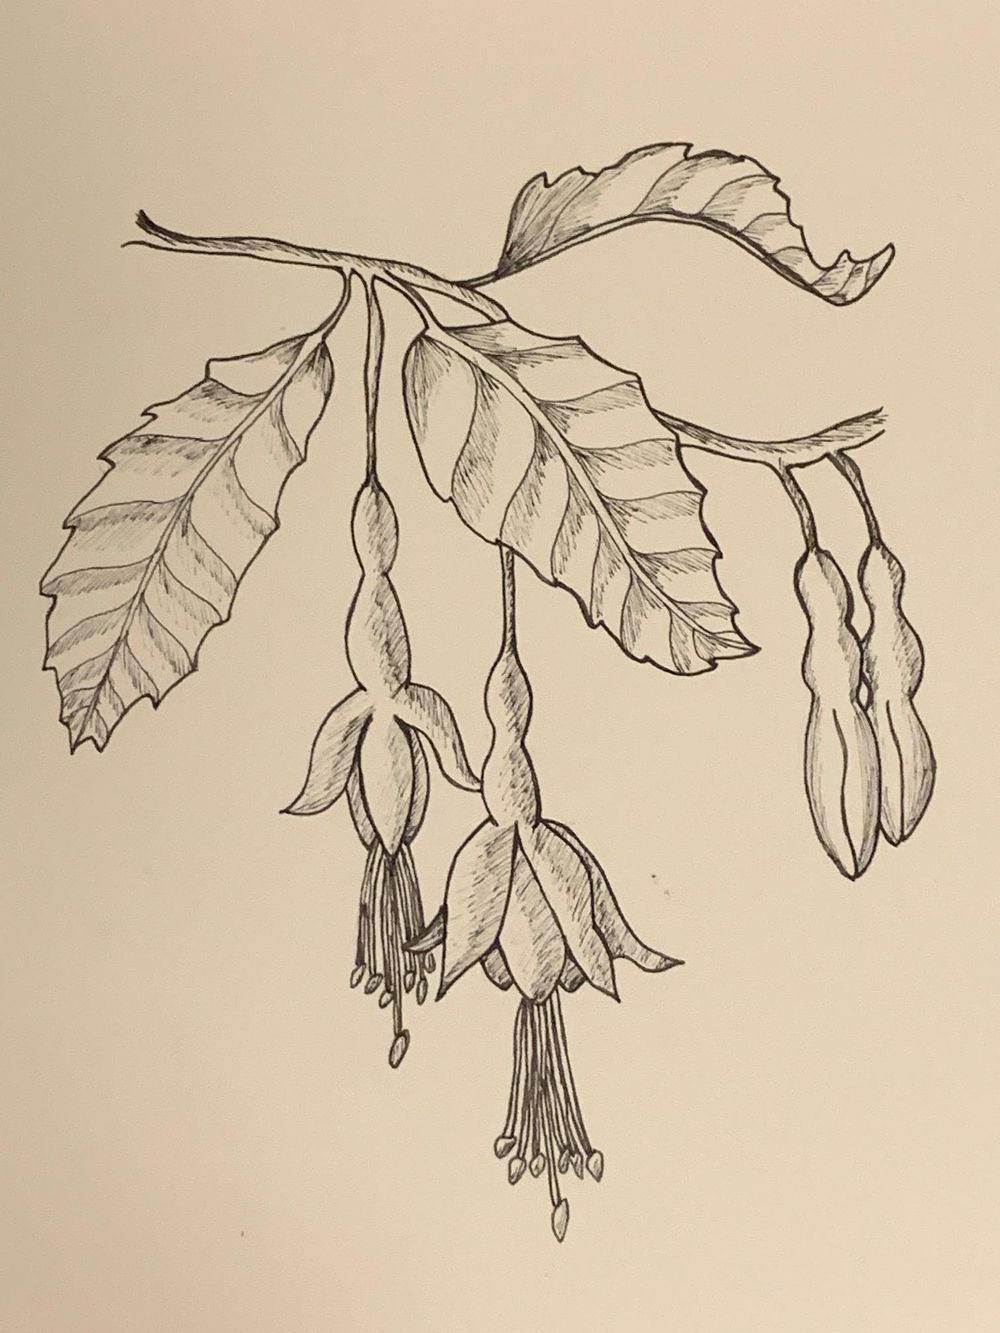 Flower drawing - image 1 - student project